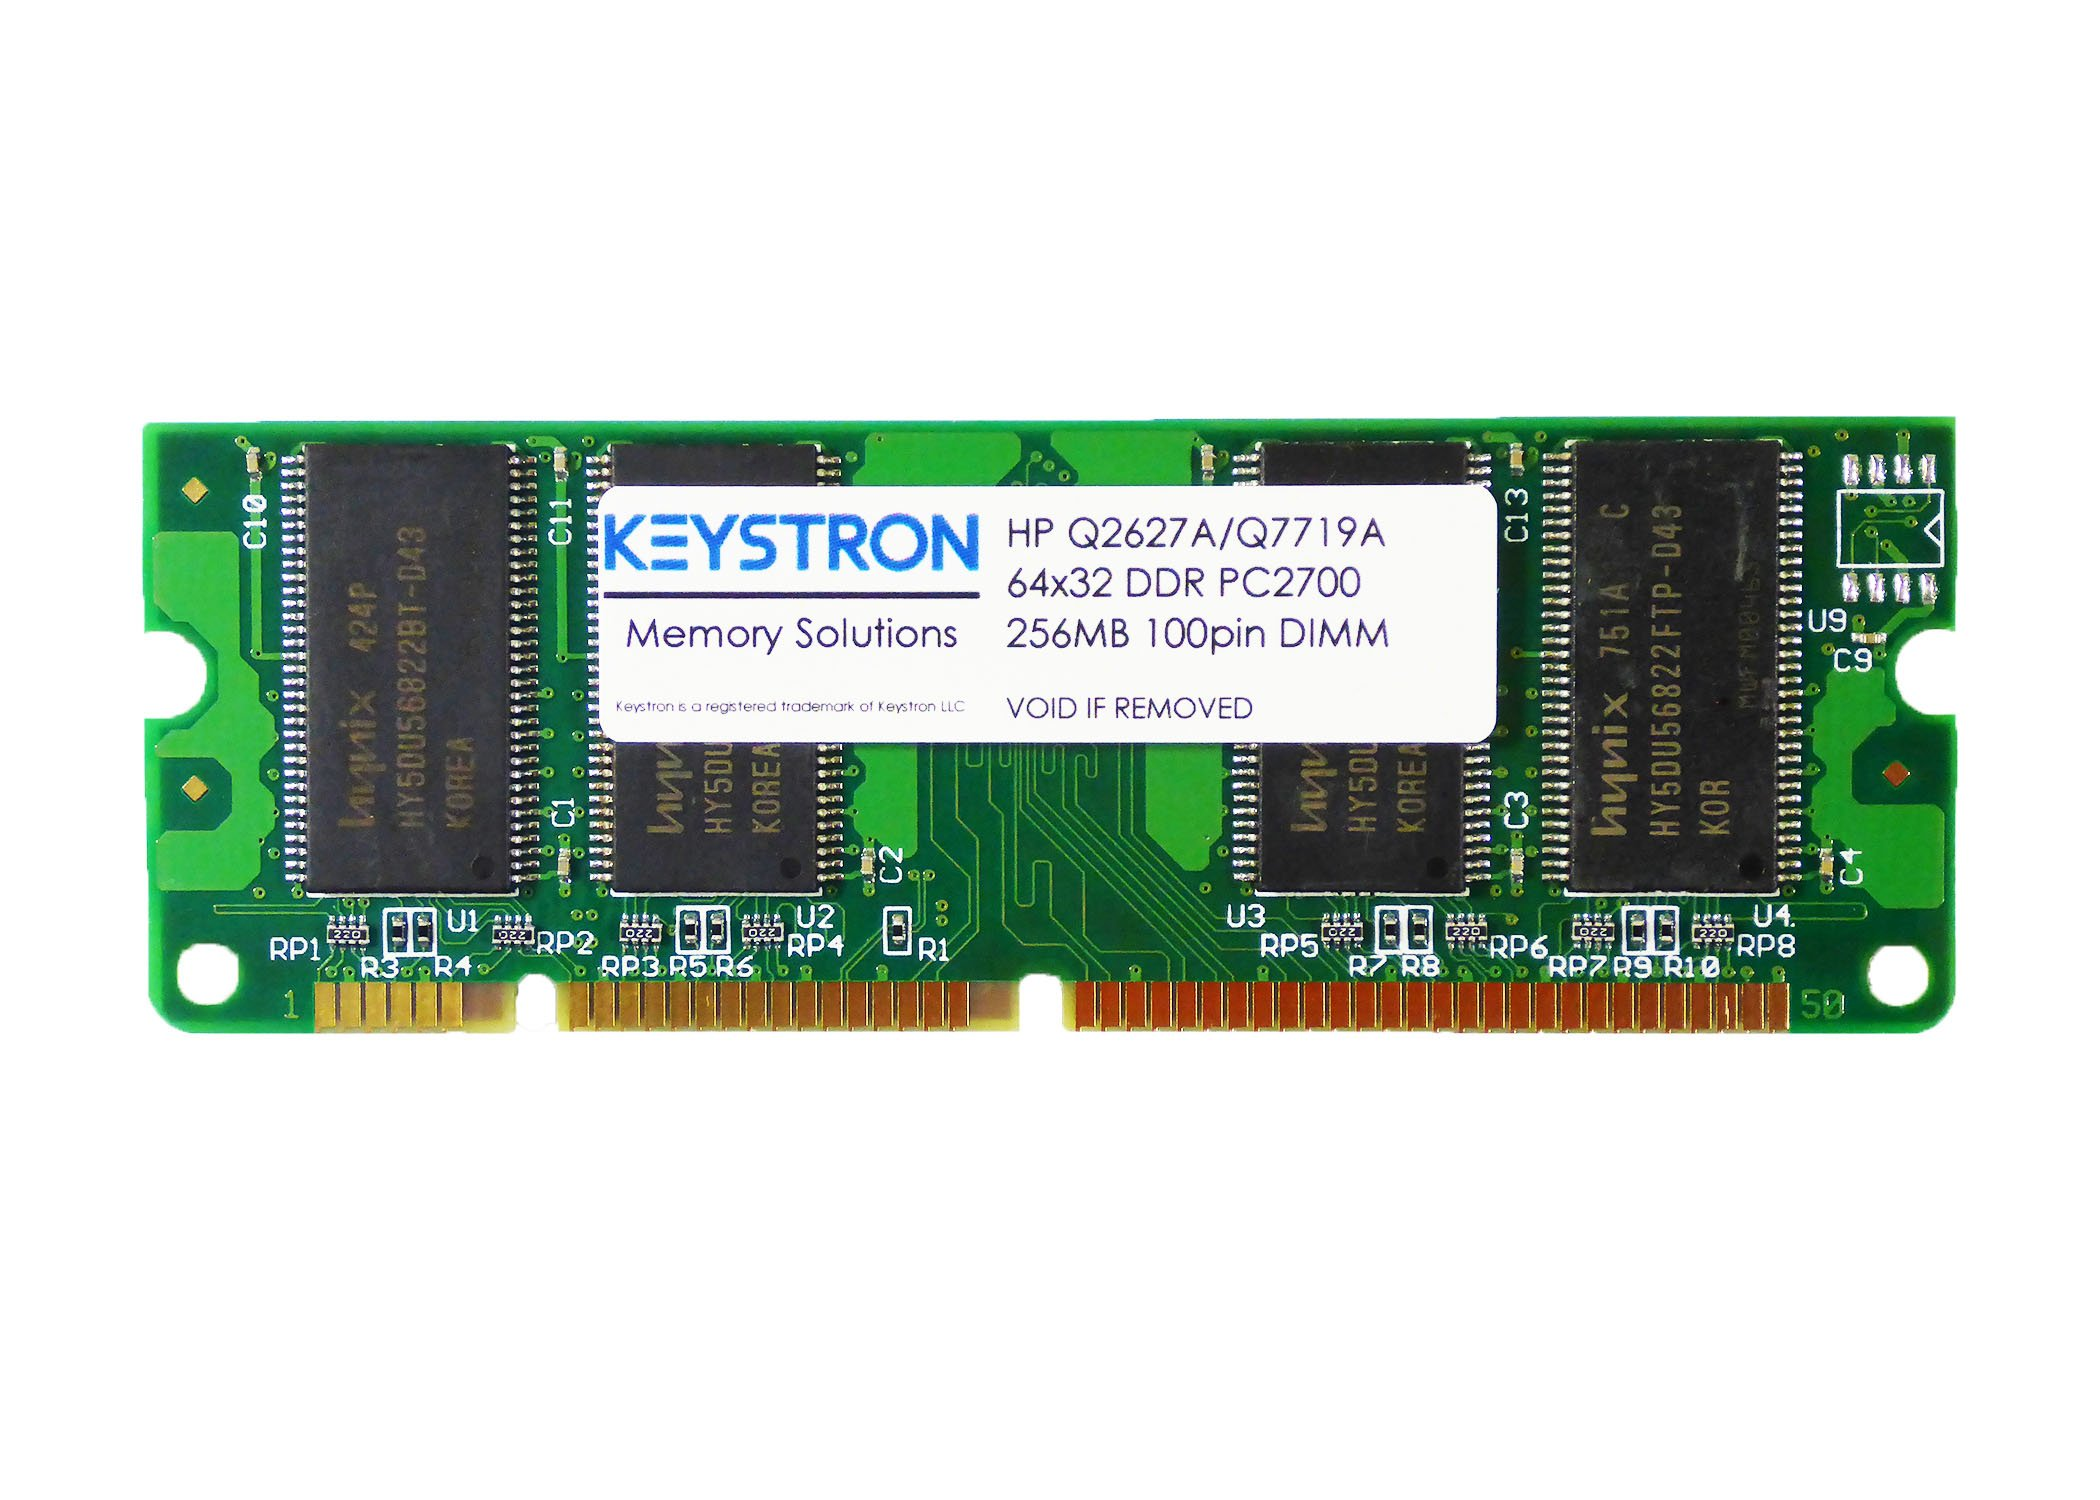 HP Q2627A Q7719A 256MB 100pin DDR SDRAM DIMM for HP LaserJet 4240 4240n 4240tn Printer Memory by Keystron